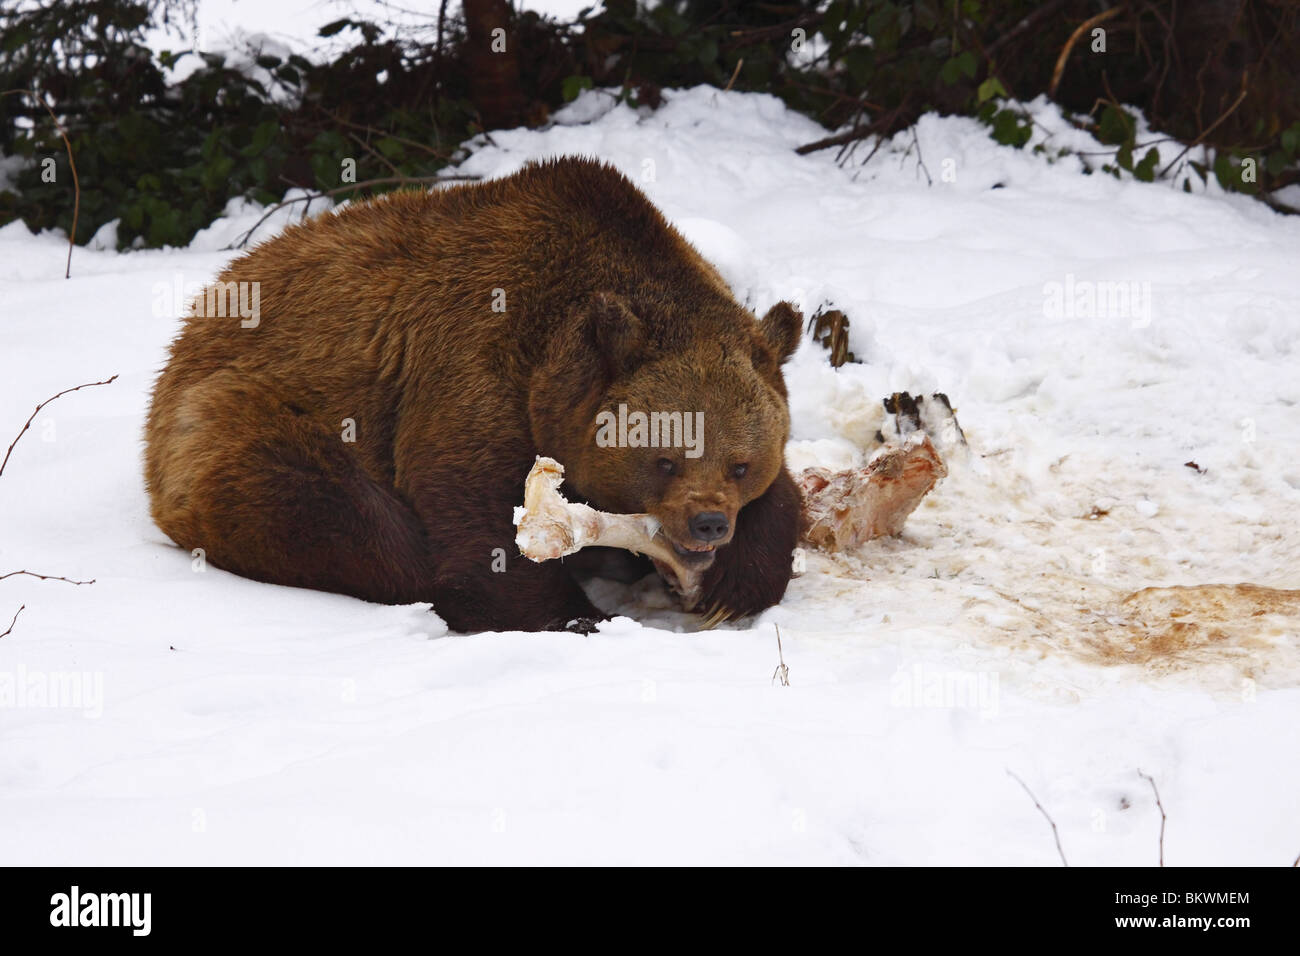 Ours brun ursus arctos Braunbär Photo Stock